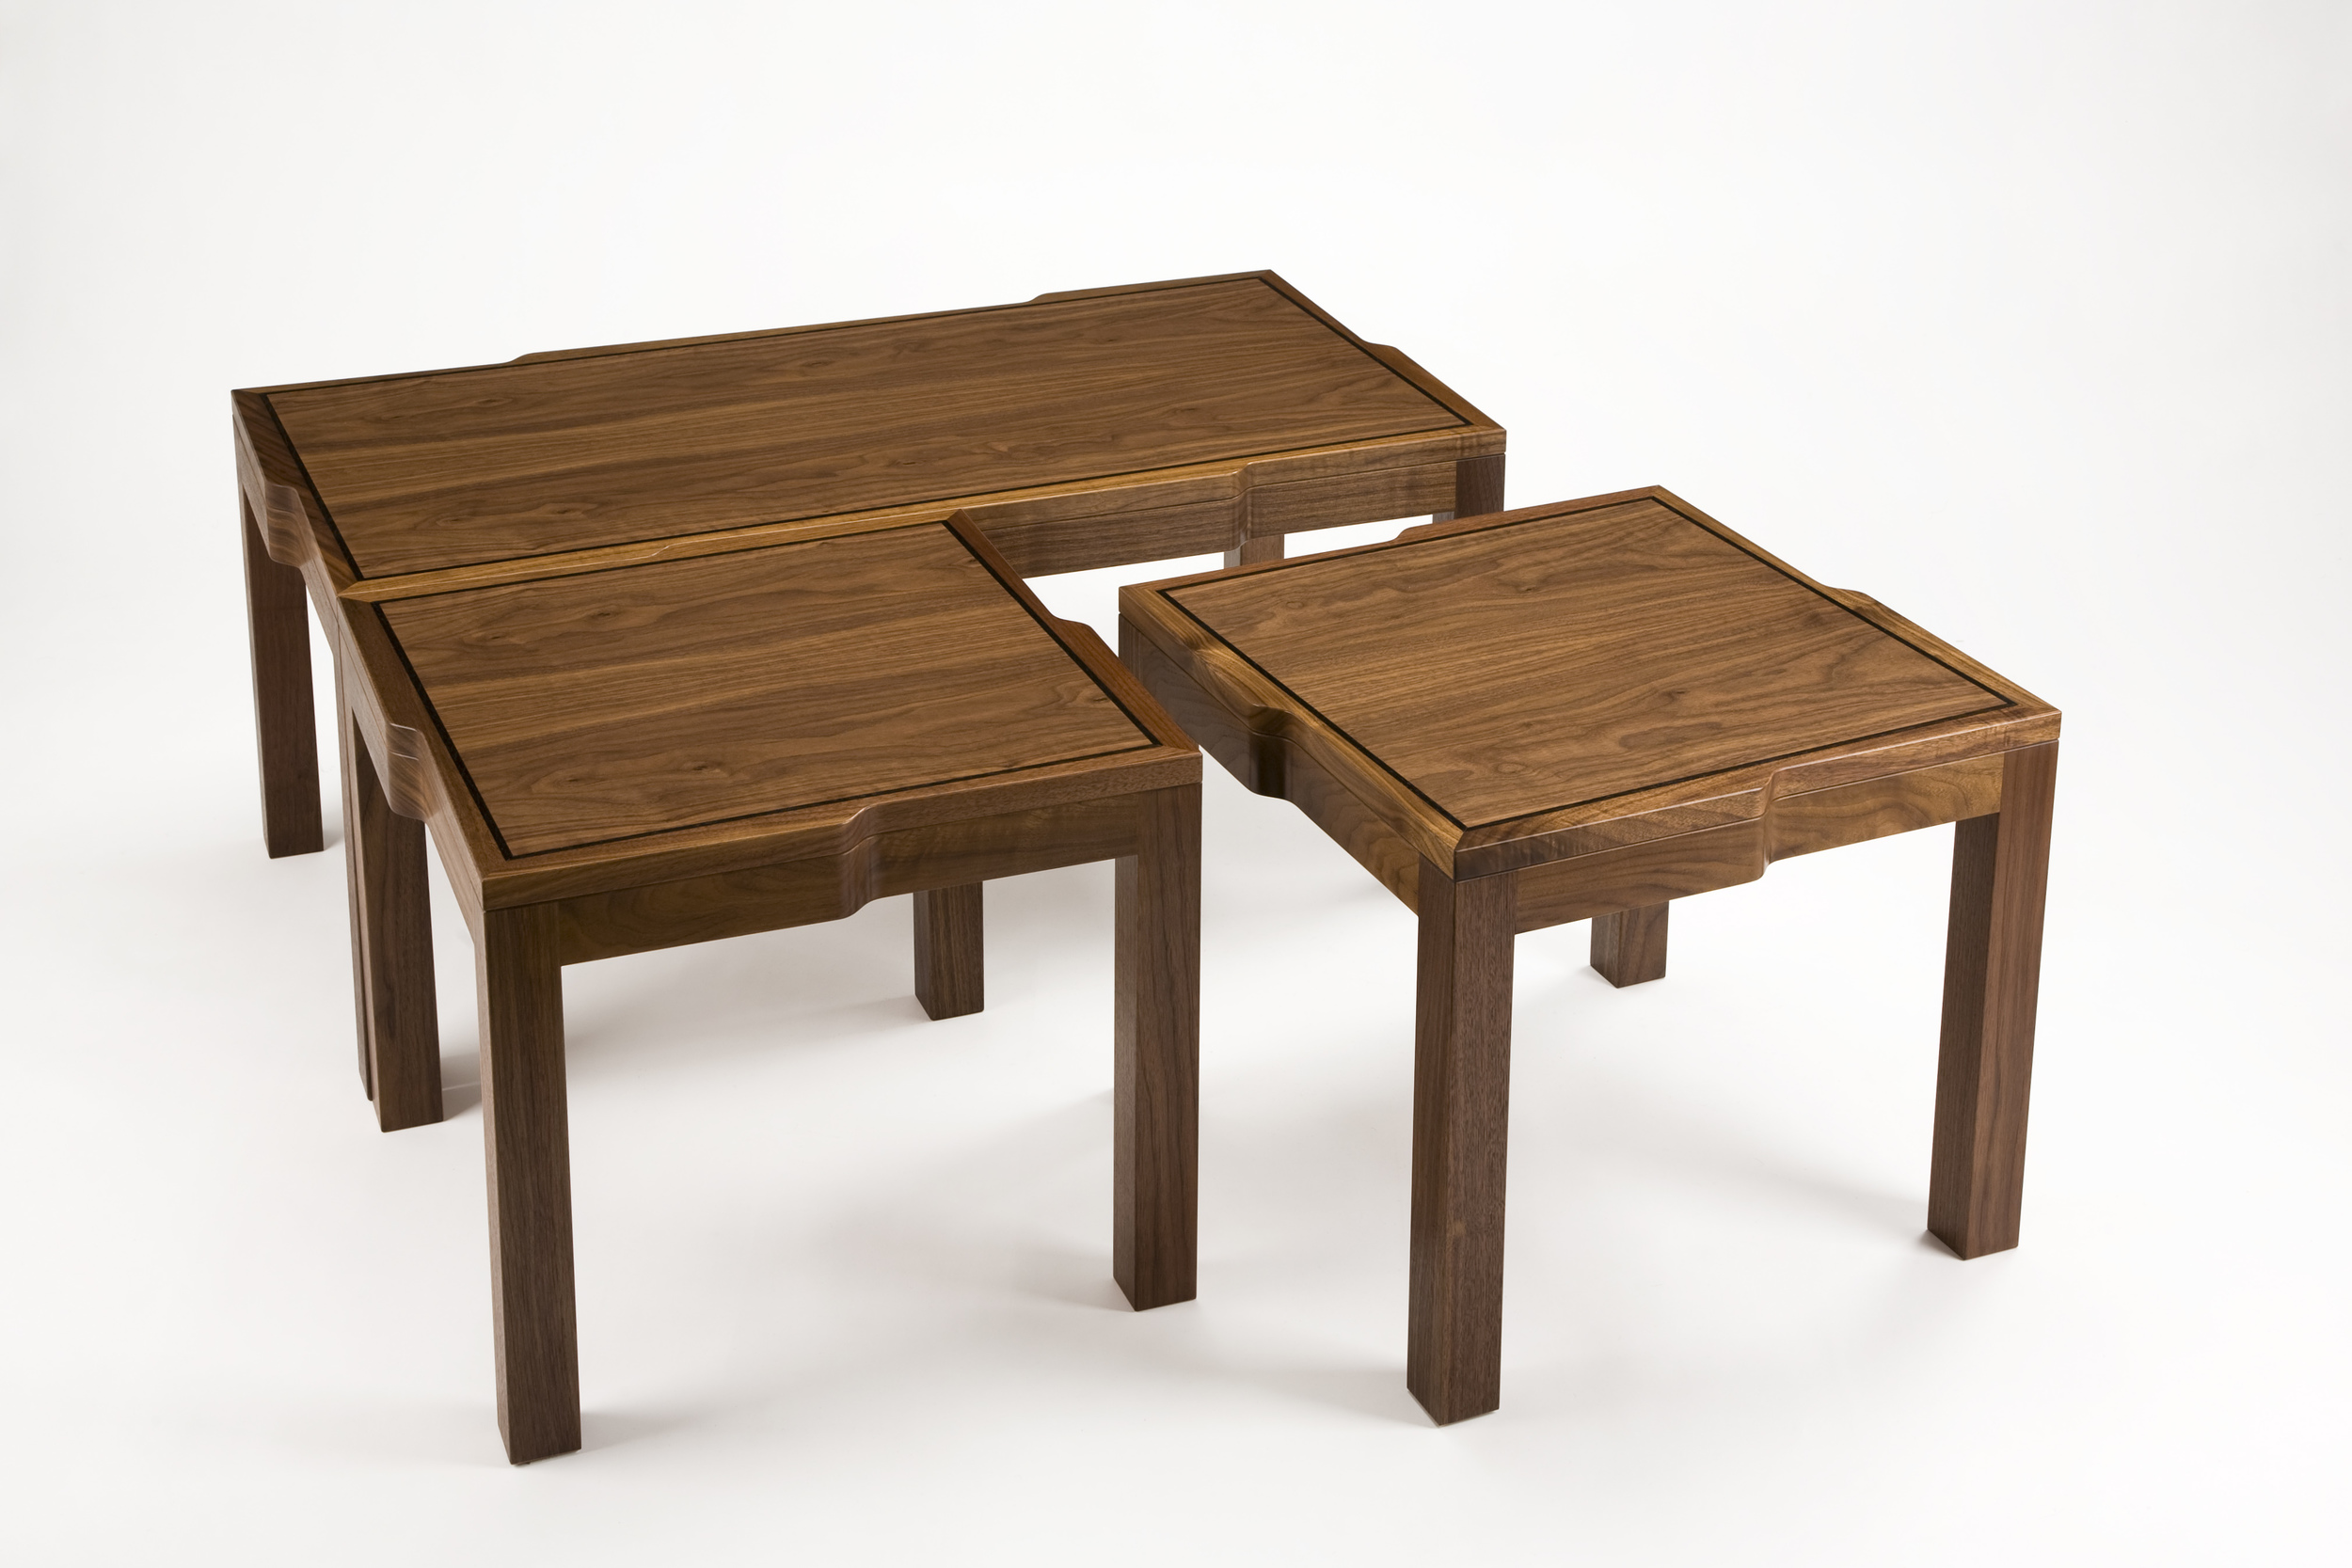 Multipart Coffee Table by Christopher Hughes.